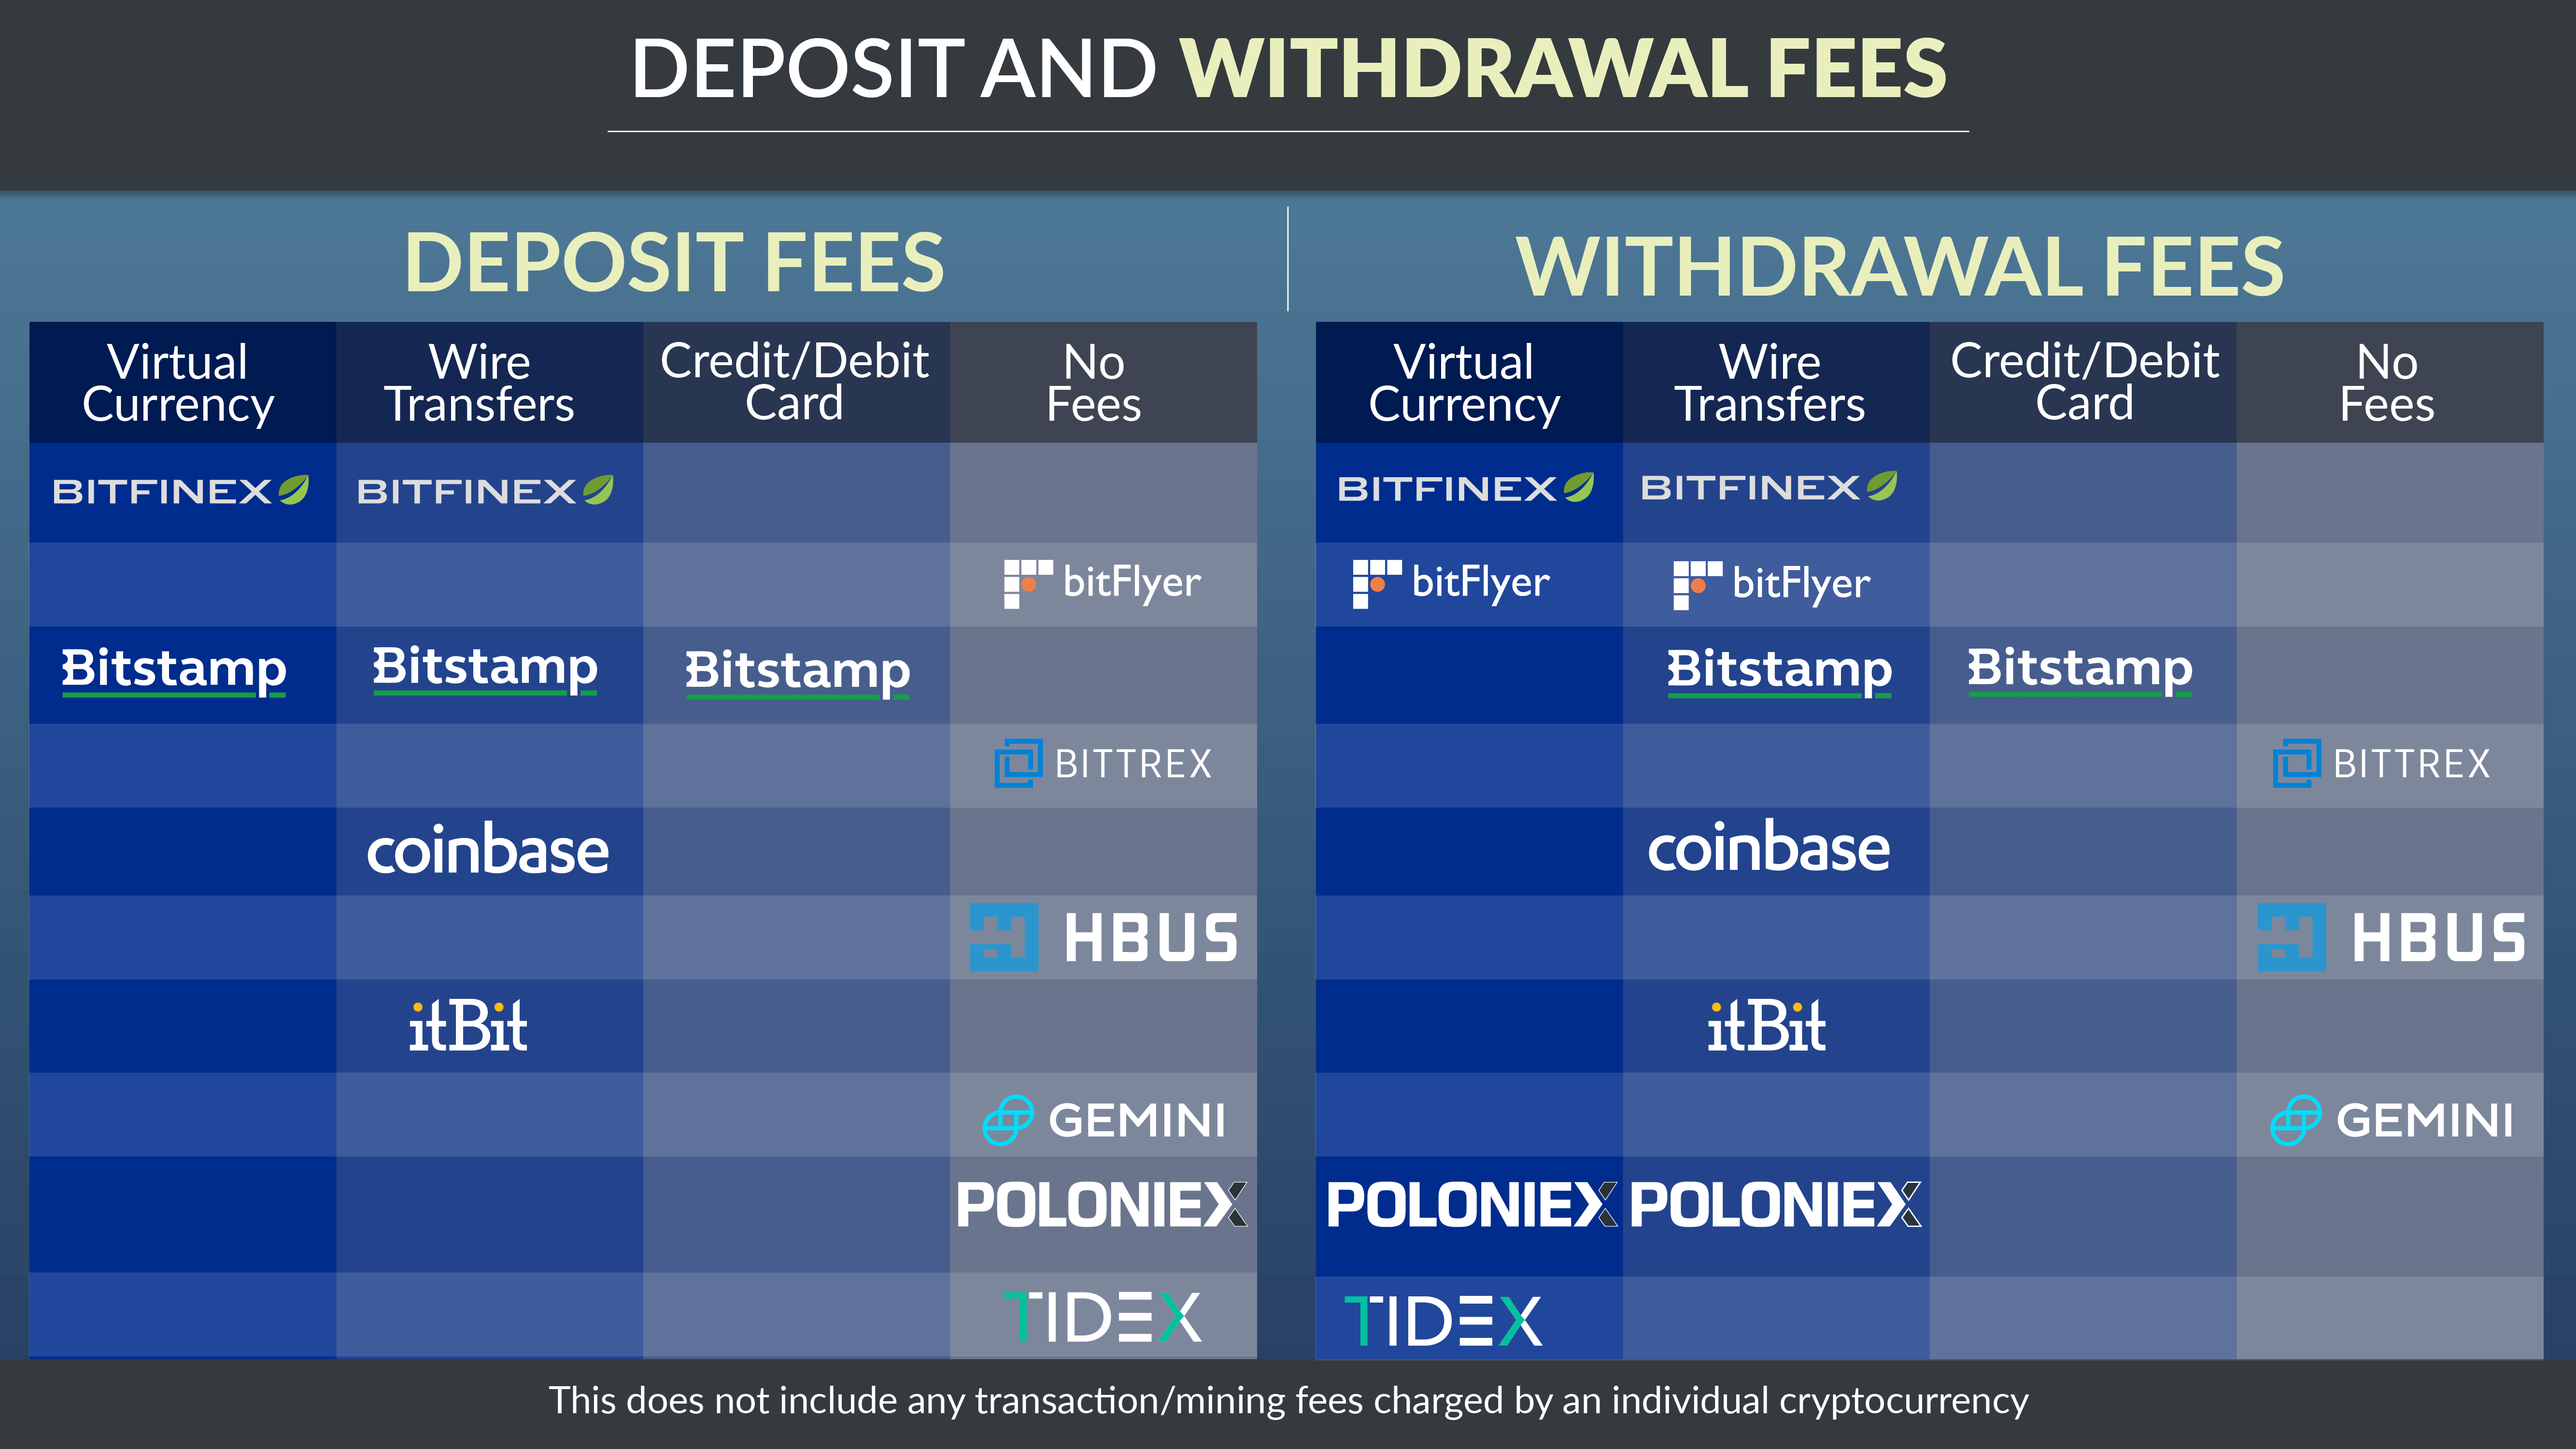 Deposit and Withdrawal Fees